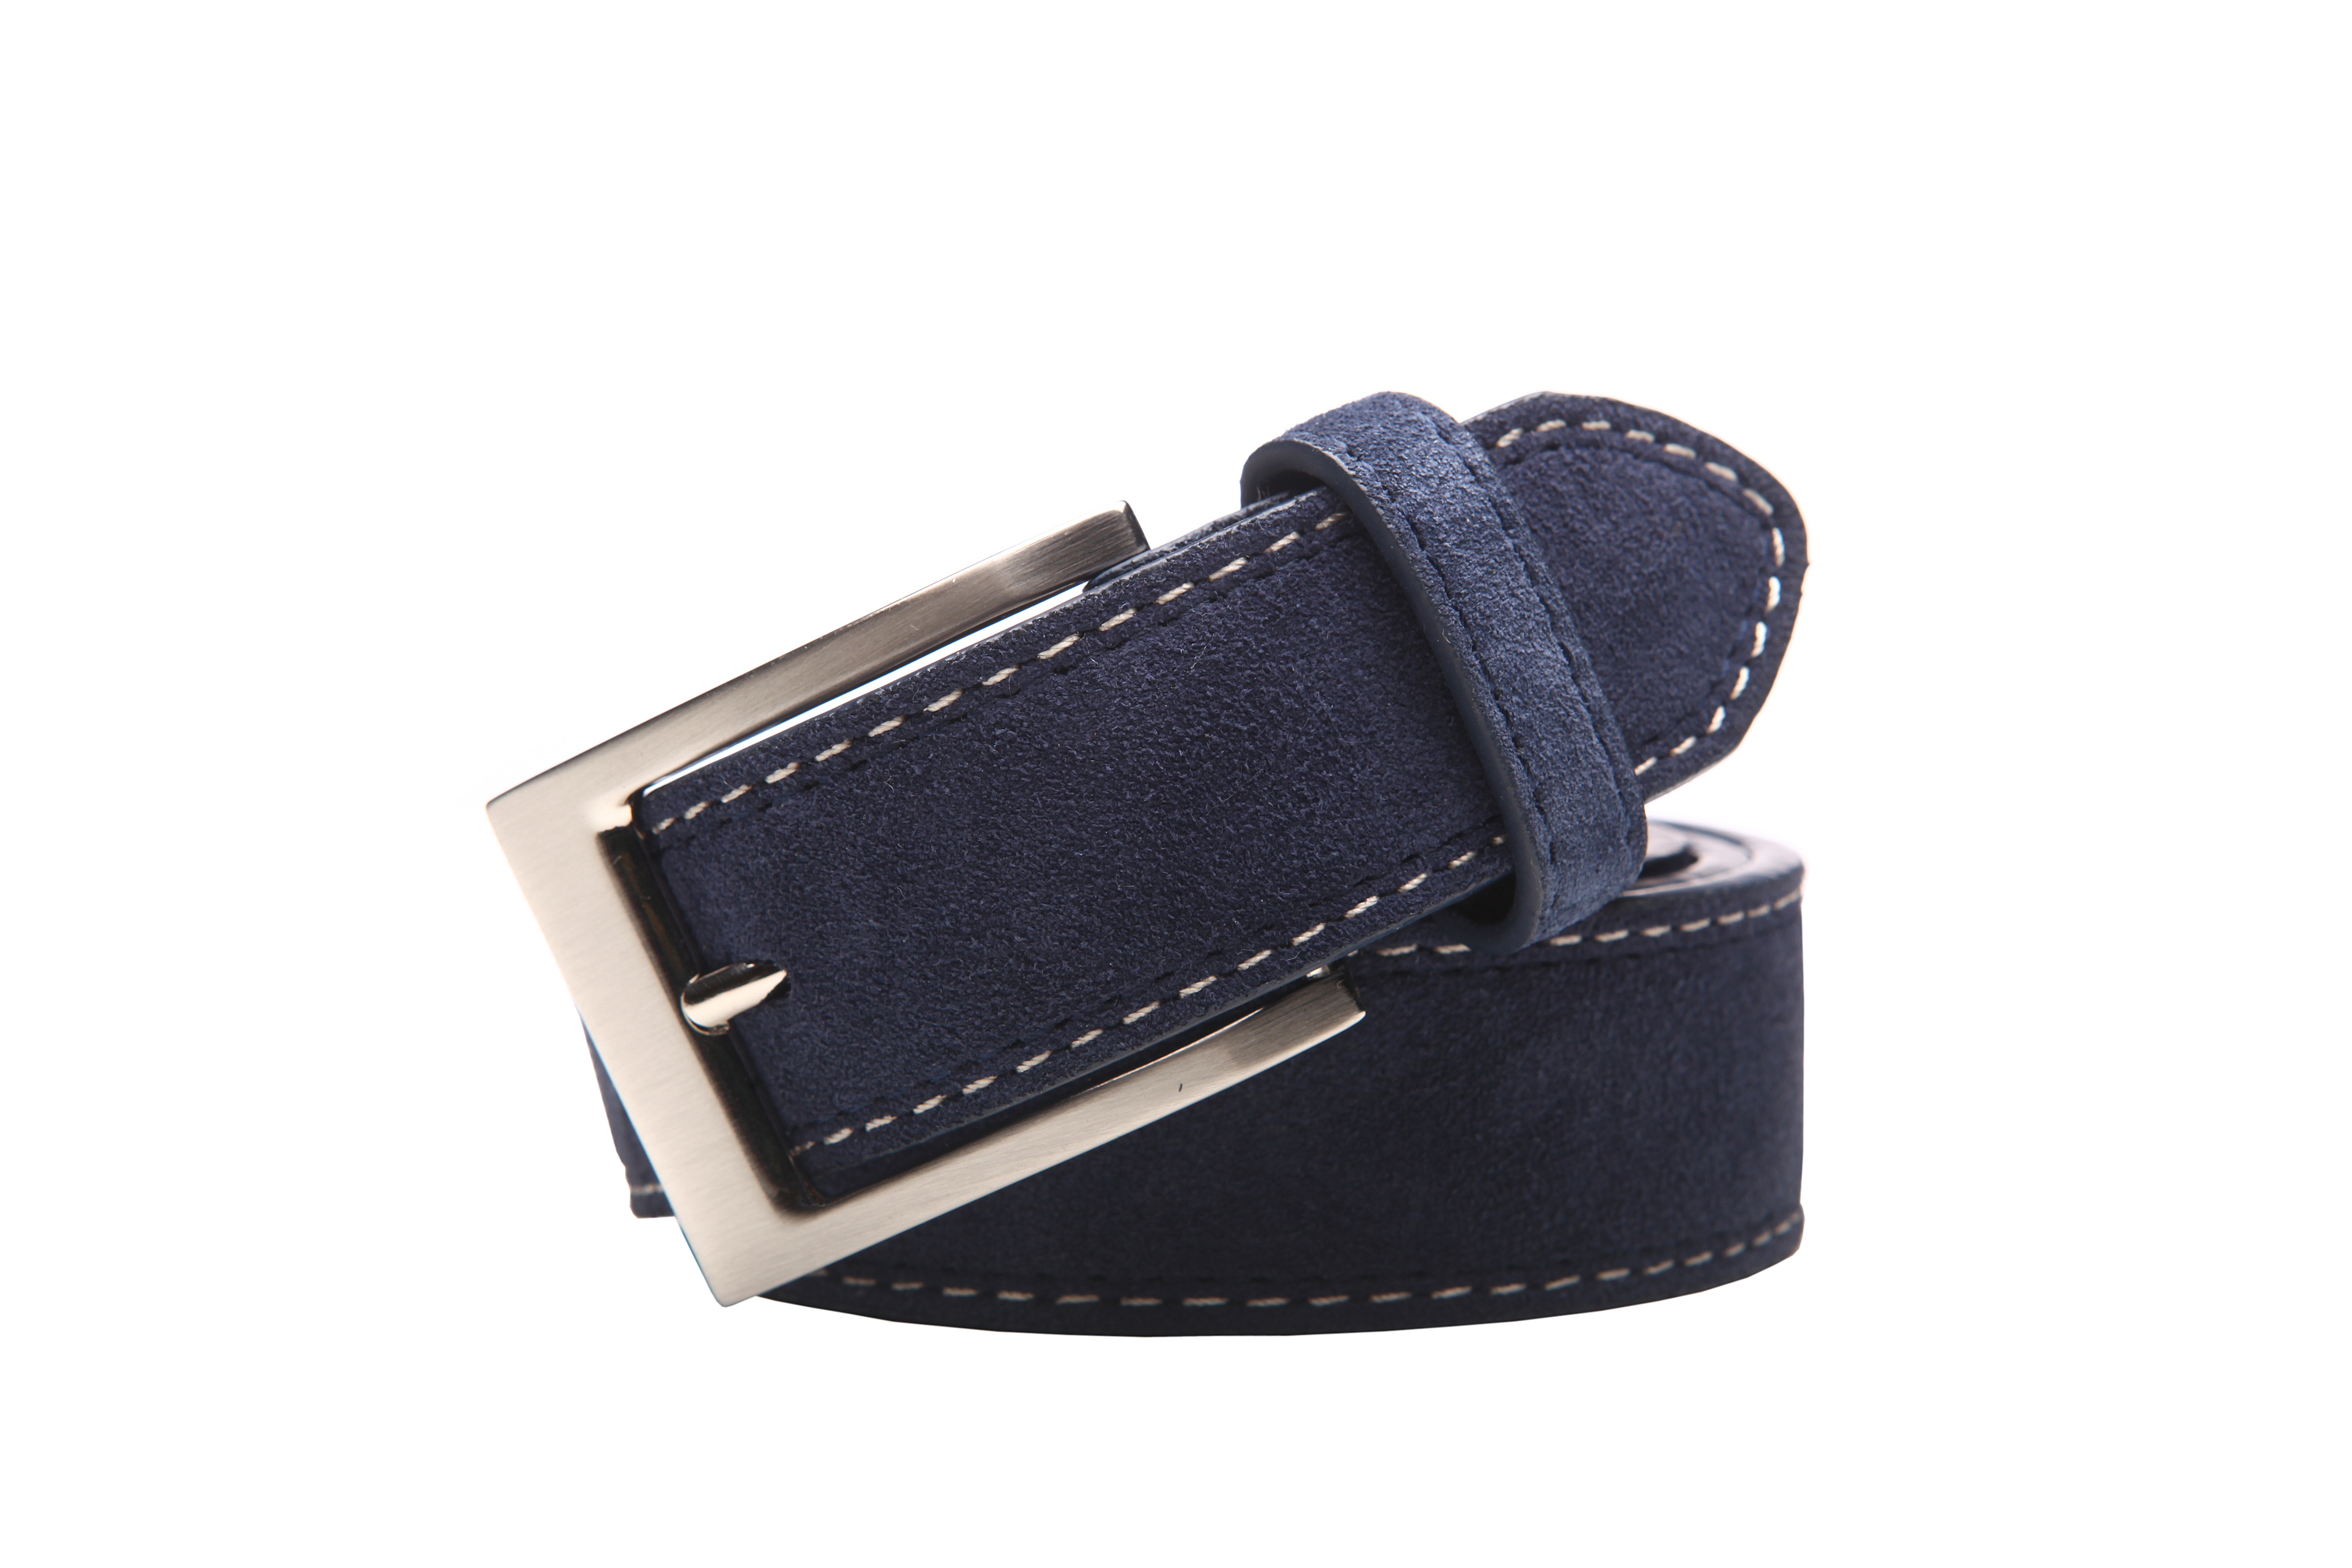 Image 1 - New Style Fashion Brand Genuine Leather Belt For Jeans Leather Belt Men Mens Belts Luxury Suede Belt StrapsMens Belts   -